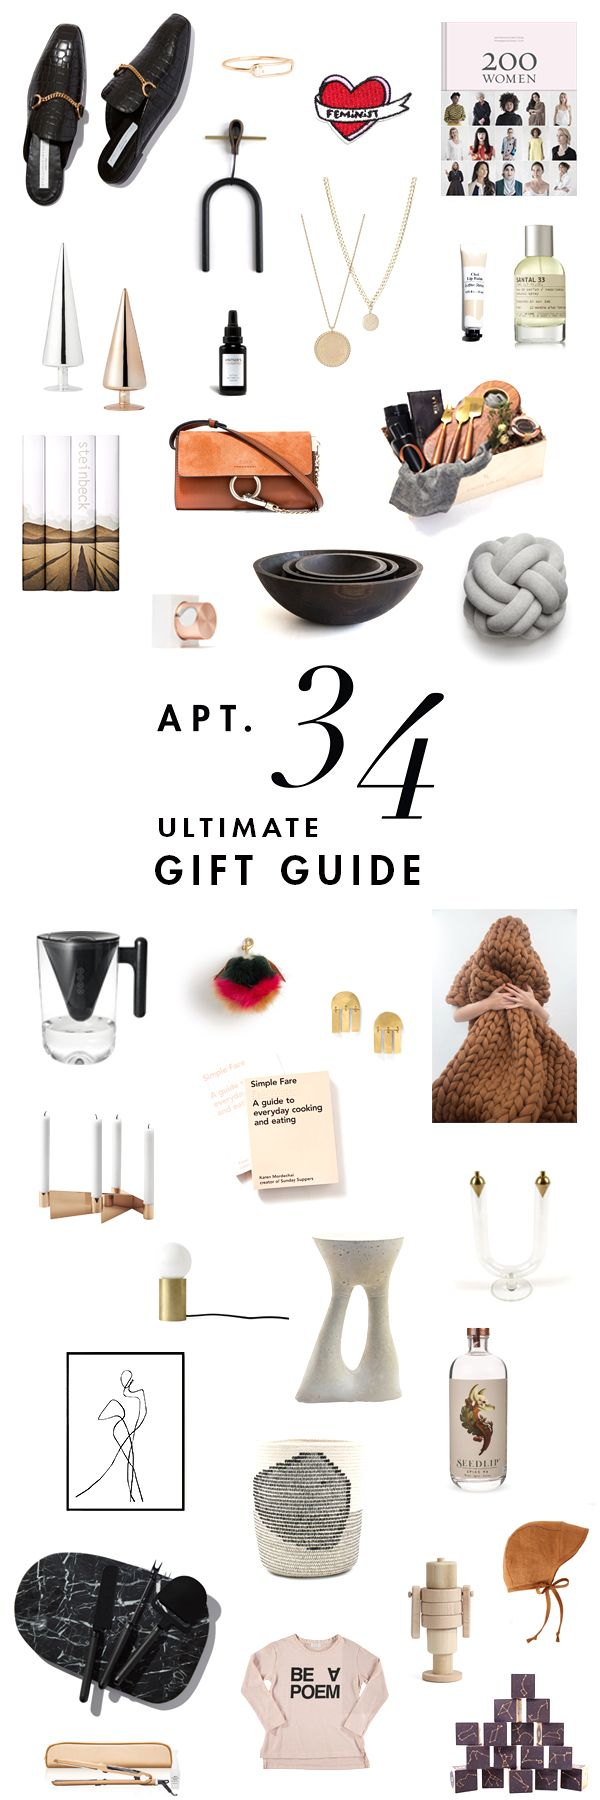 the ultimate gift guide on apartment 34